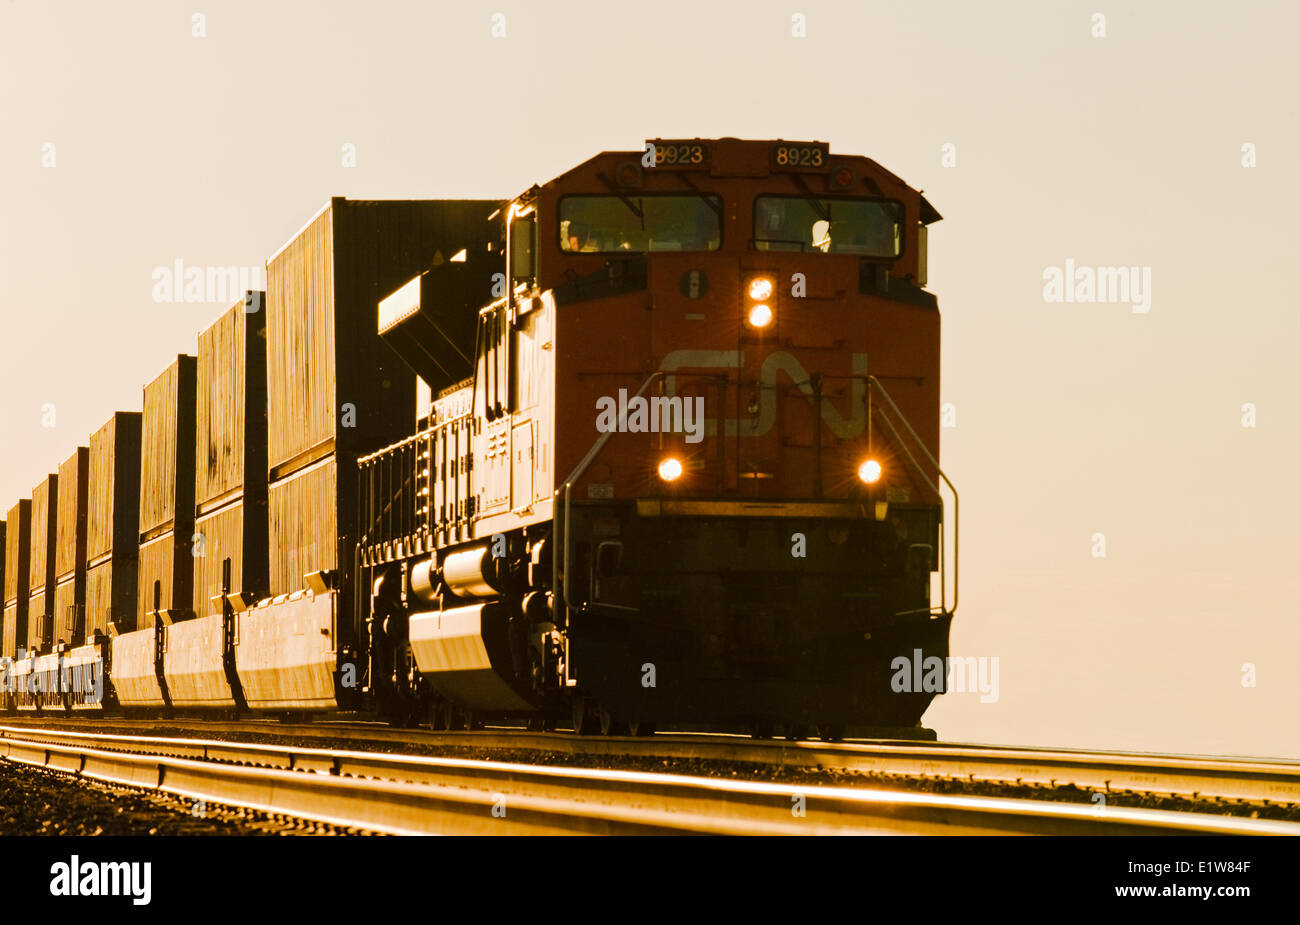 A locomotive pulls rail cars carrying containers near Winnipeg, Manitoba, Canada - Stock Image